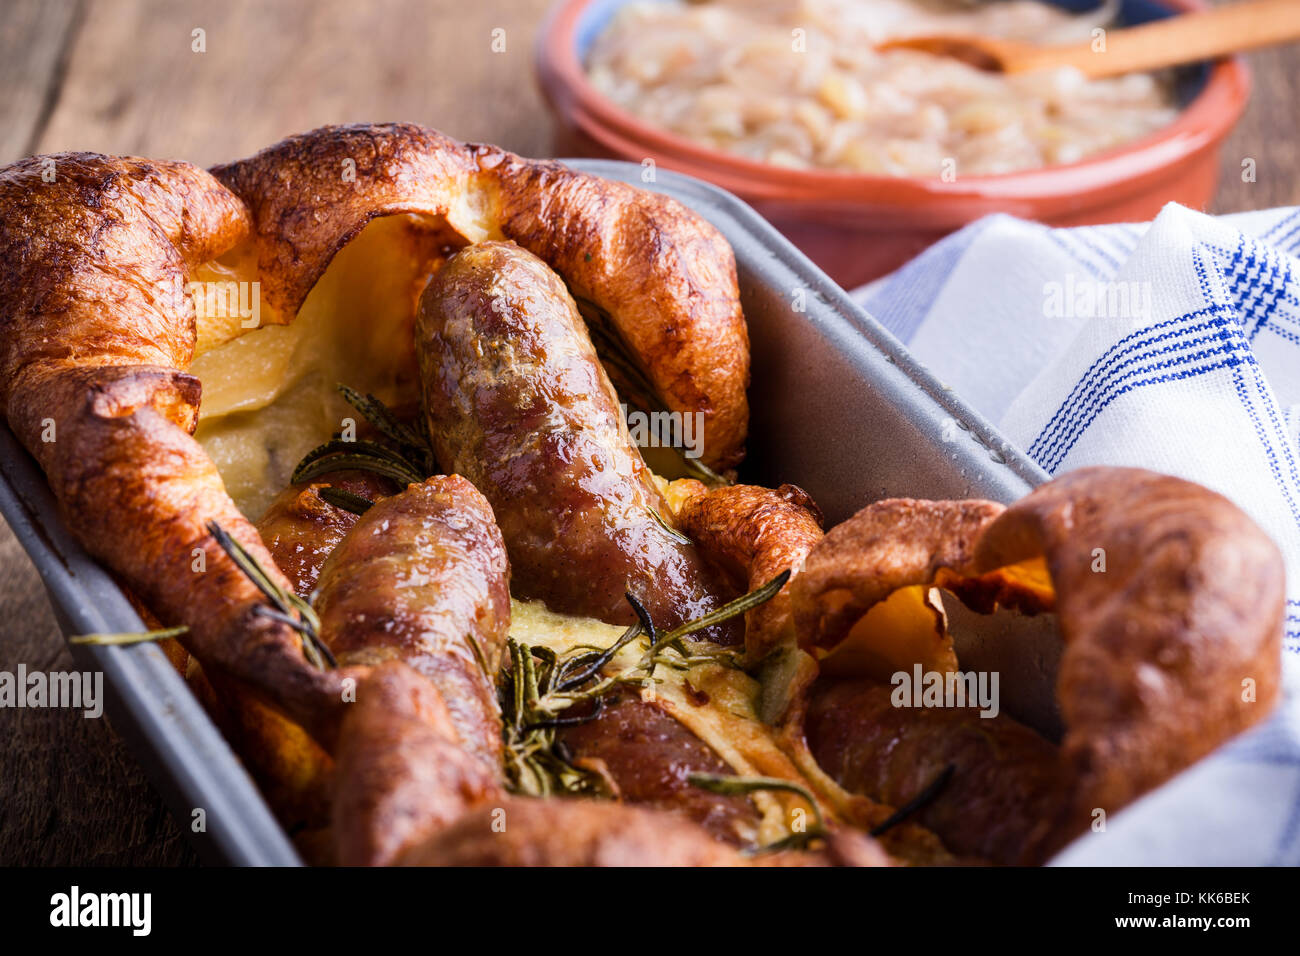 Baked sausages in Yorkshire pudding batter and served with  onion gravy, toad in the hole - Stock Image